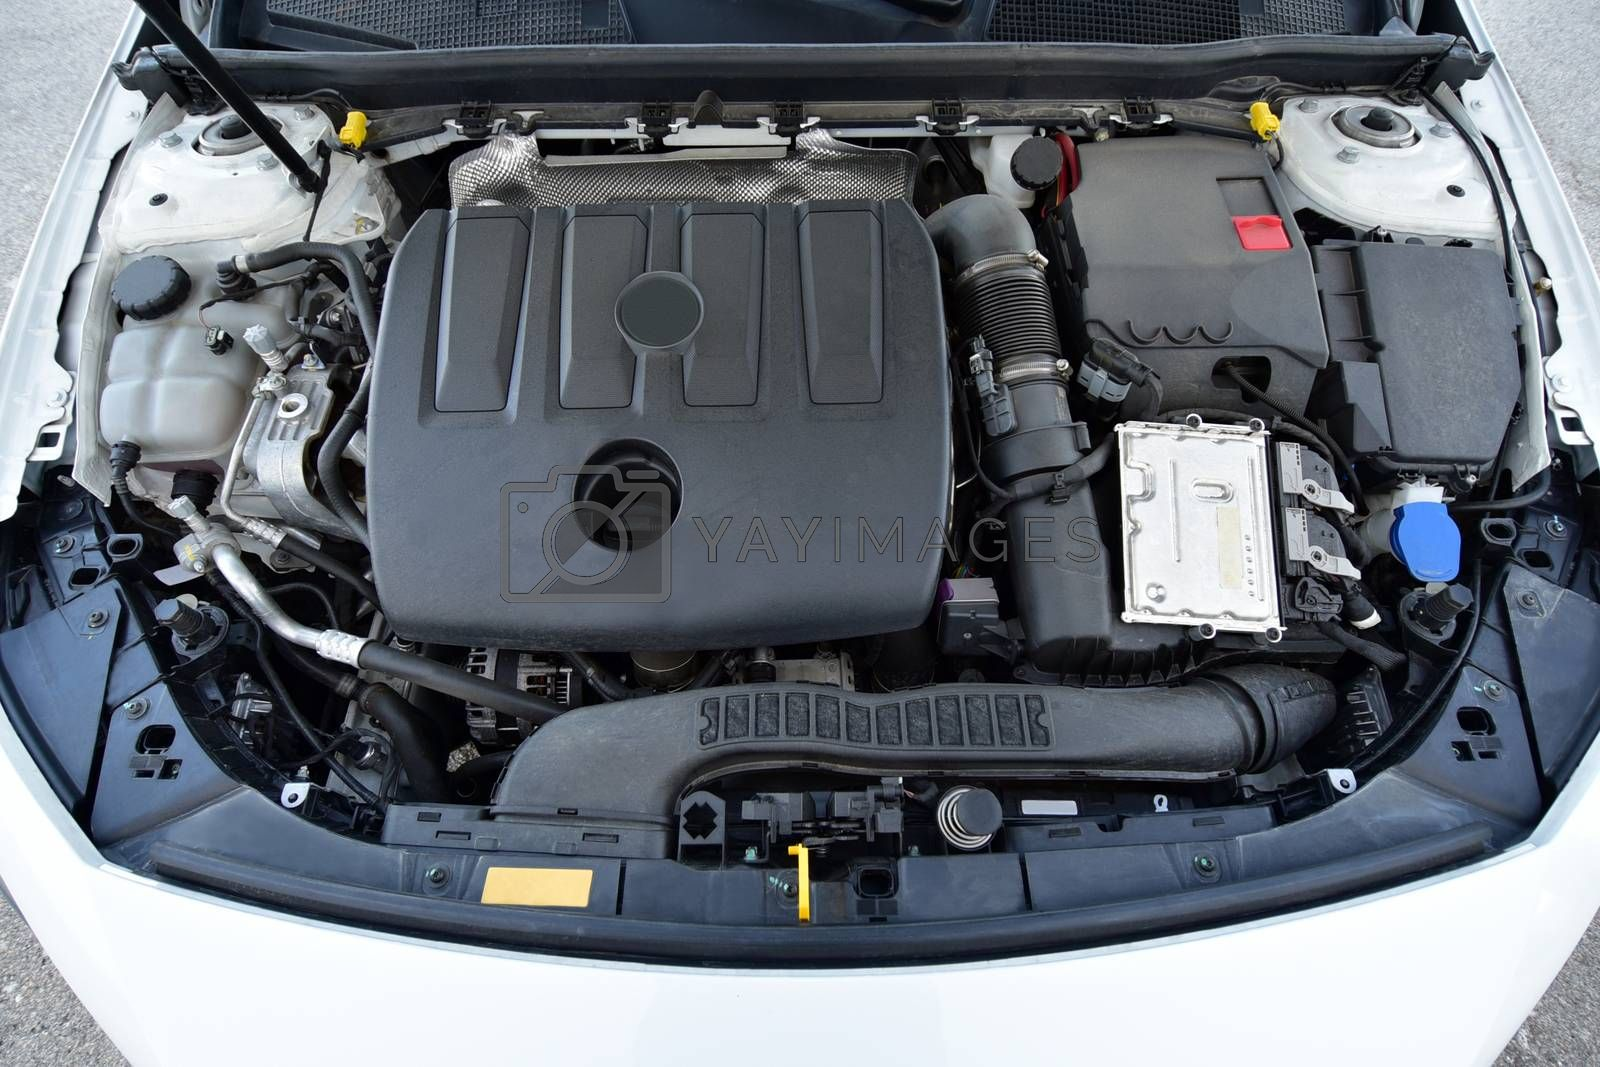 Royalty free image of Engine in a passenger car by aselsa